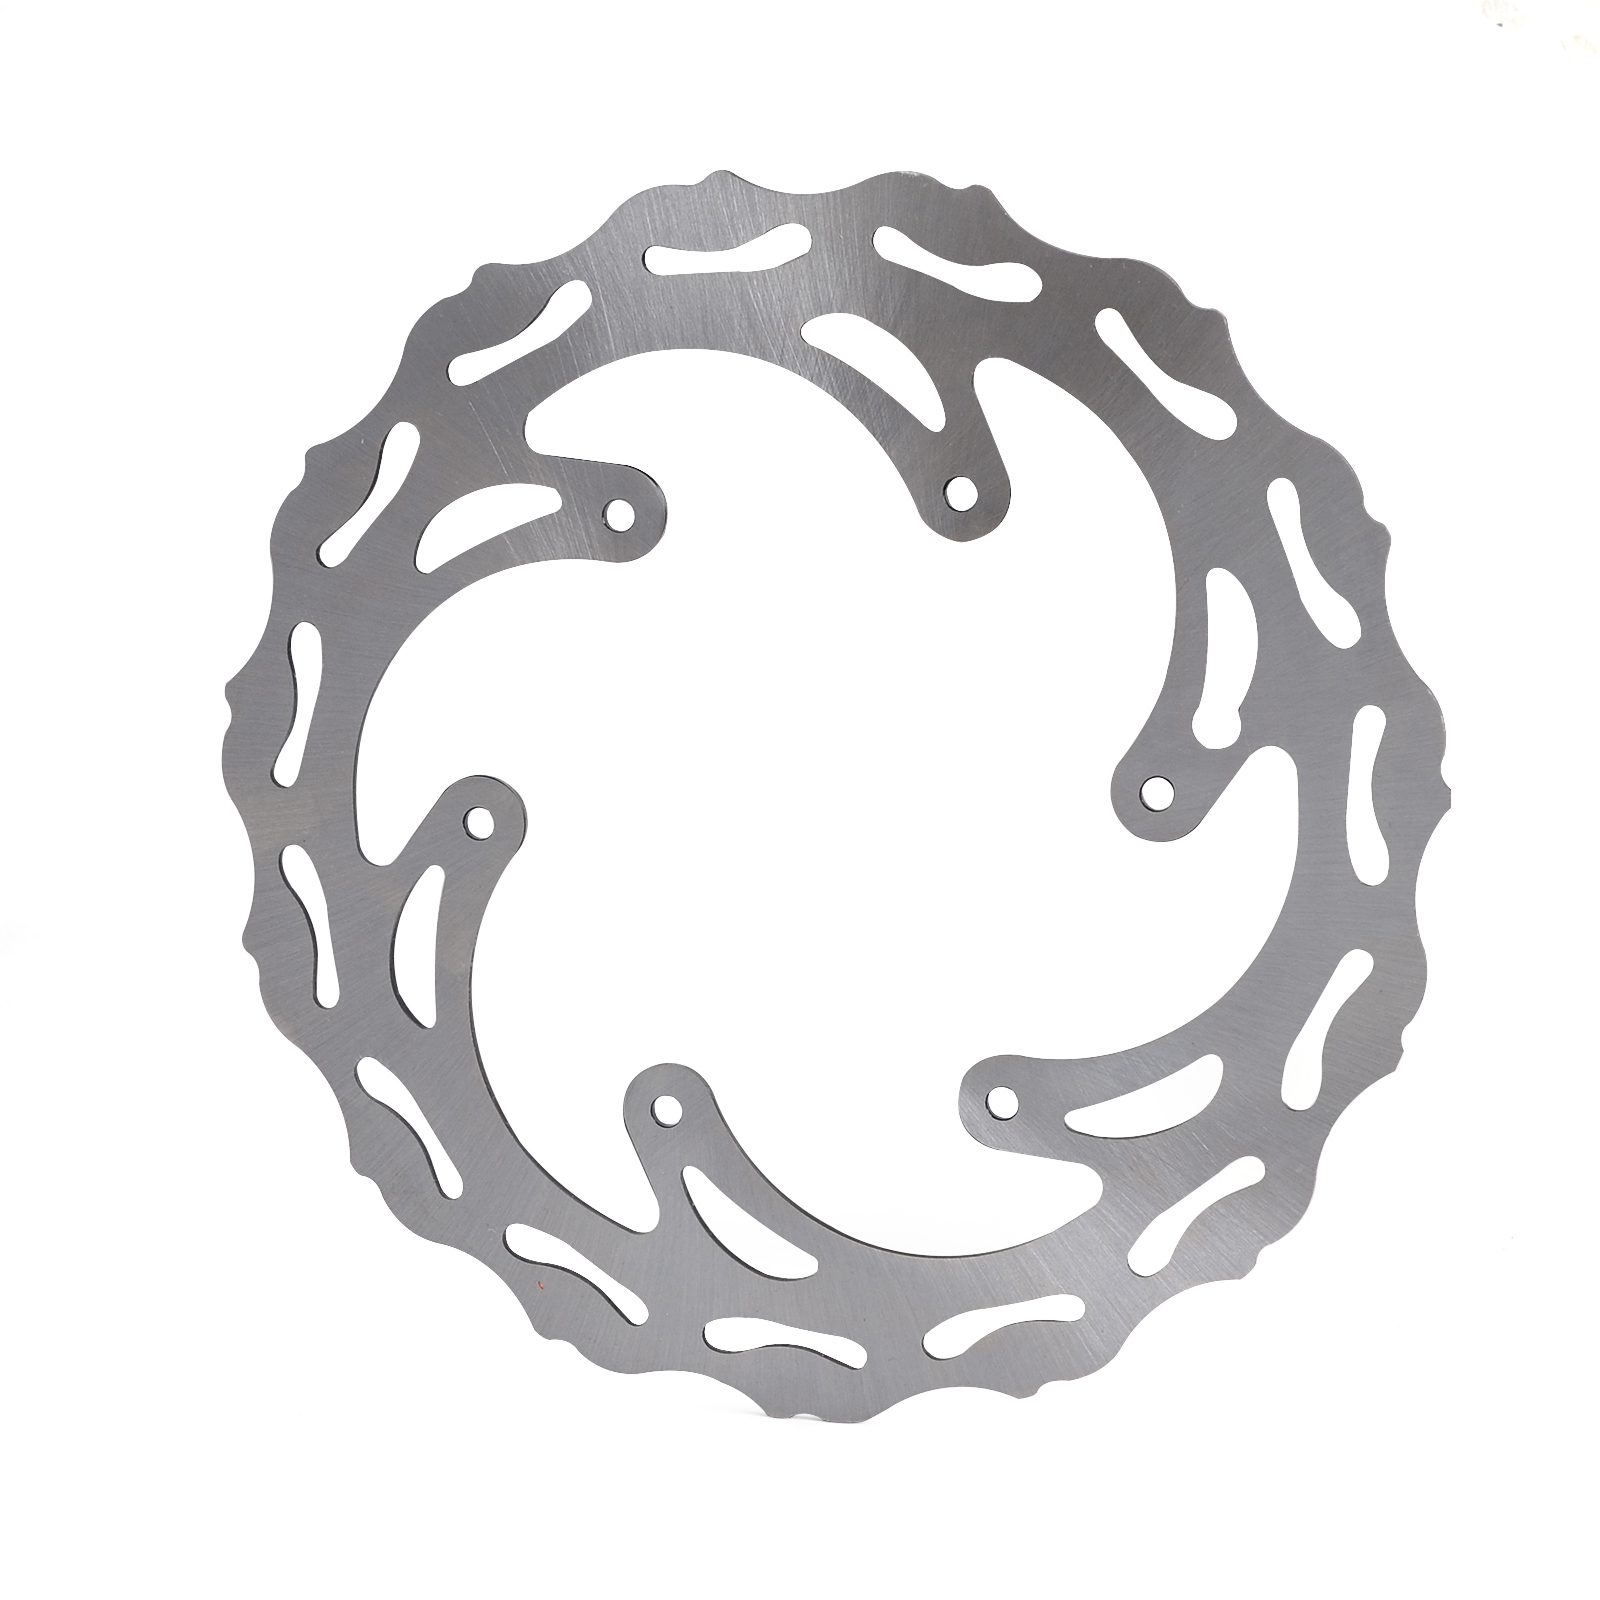 NICECNC Front Brake Disc Rotor For KTM EXC 125 200 250 300 400 450 500 525 530 EXC Six Days Racing EXCF Factory EXCR SX SXF XC front brake disc rotor for ktm 380 exc 1998 1999 2000 2001 2002 sx mxc 1998 2001 400 egs exc g xc w 2007 2008 2009 07 08 09